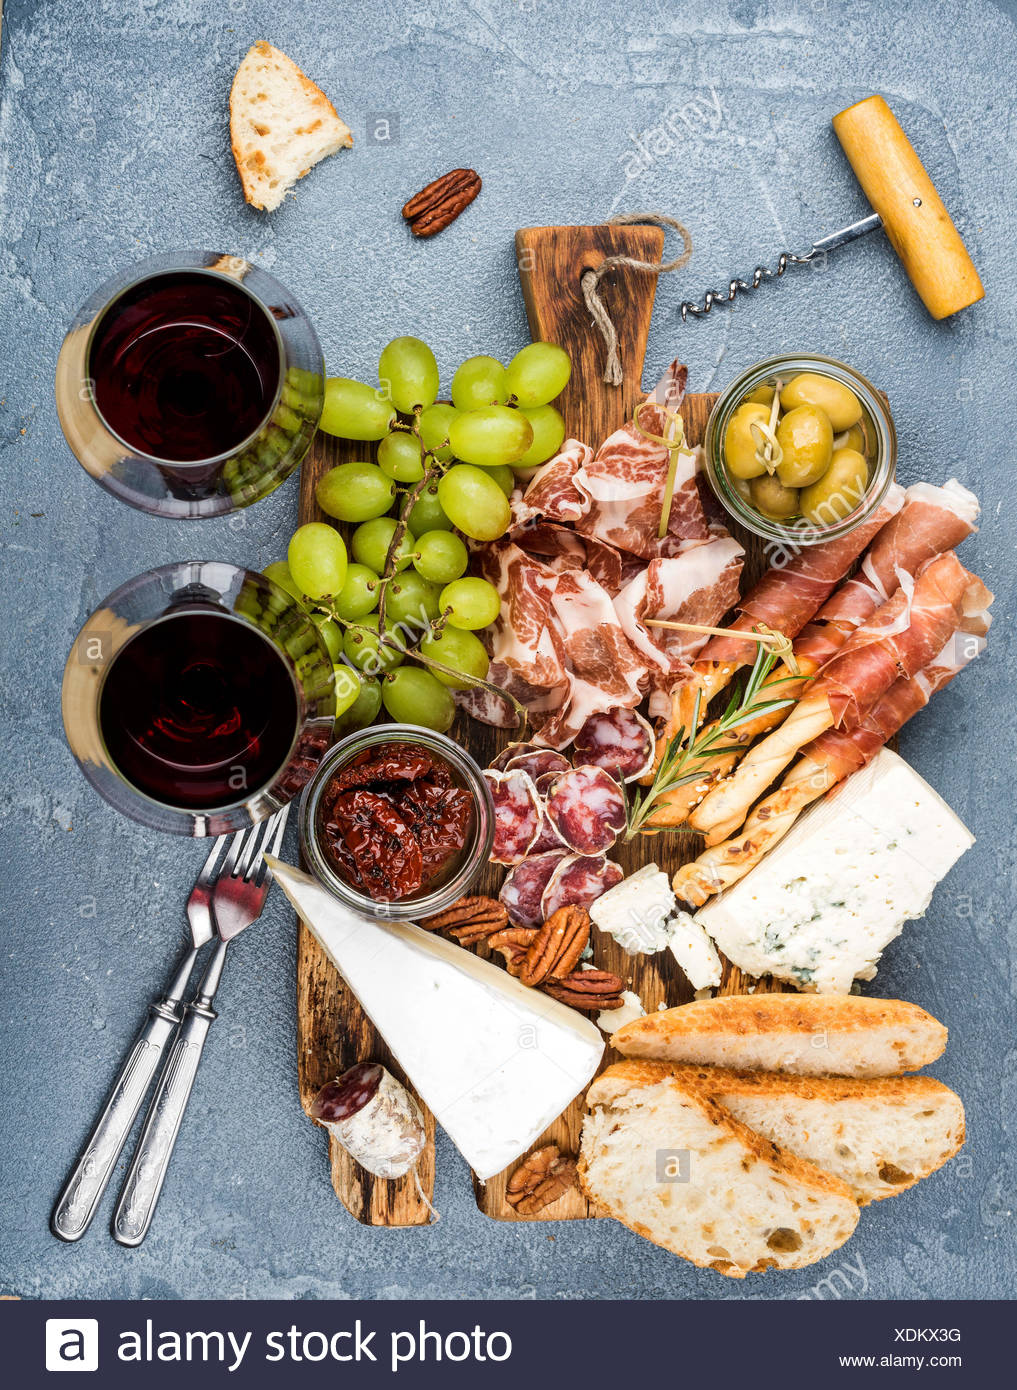 Cheese and meat appetizer selection. Prosciutto di Parma, salami, bread sticks, baguette slices, olives, sun-dried tomatoes, gra - Stock Image